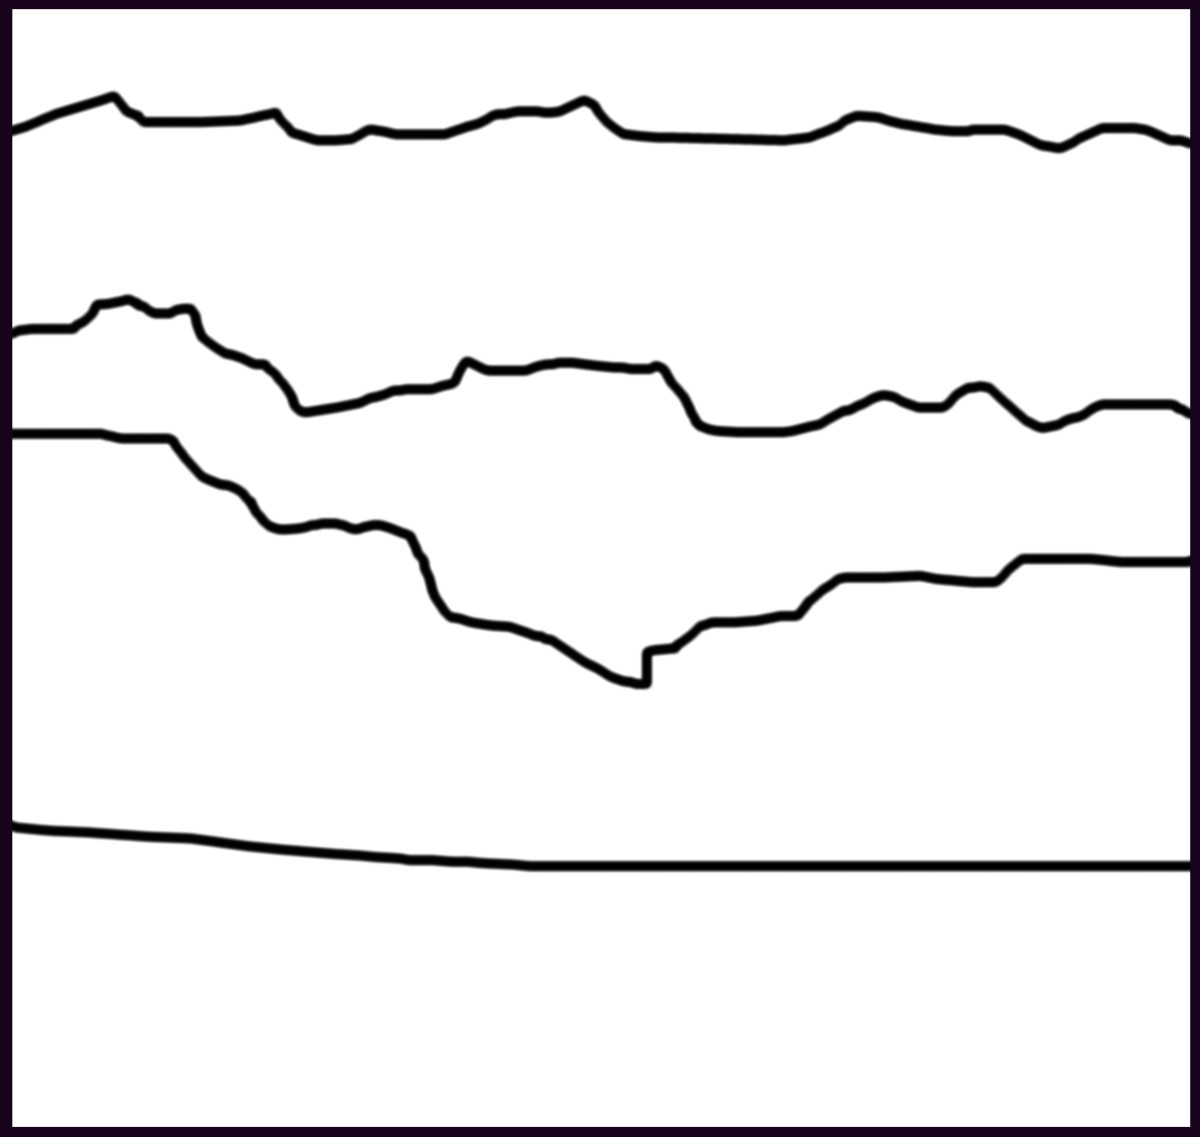 Divide the plane into horizontal lines and our brain will read it as a landscape. Click on the next thumbnail to see it colored.